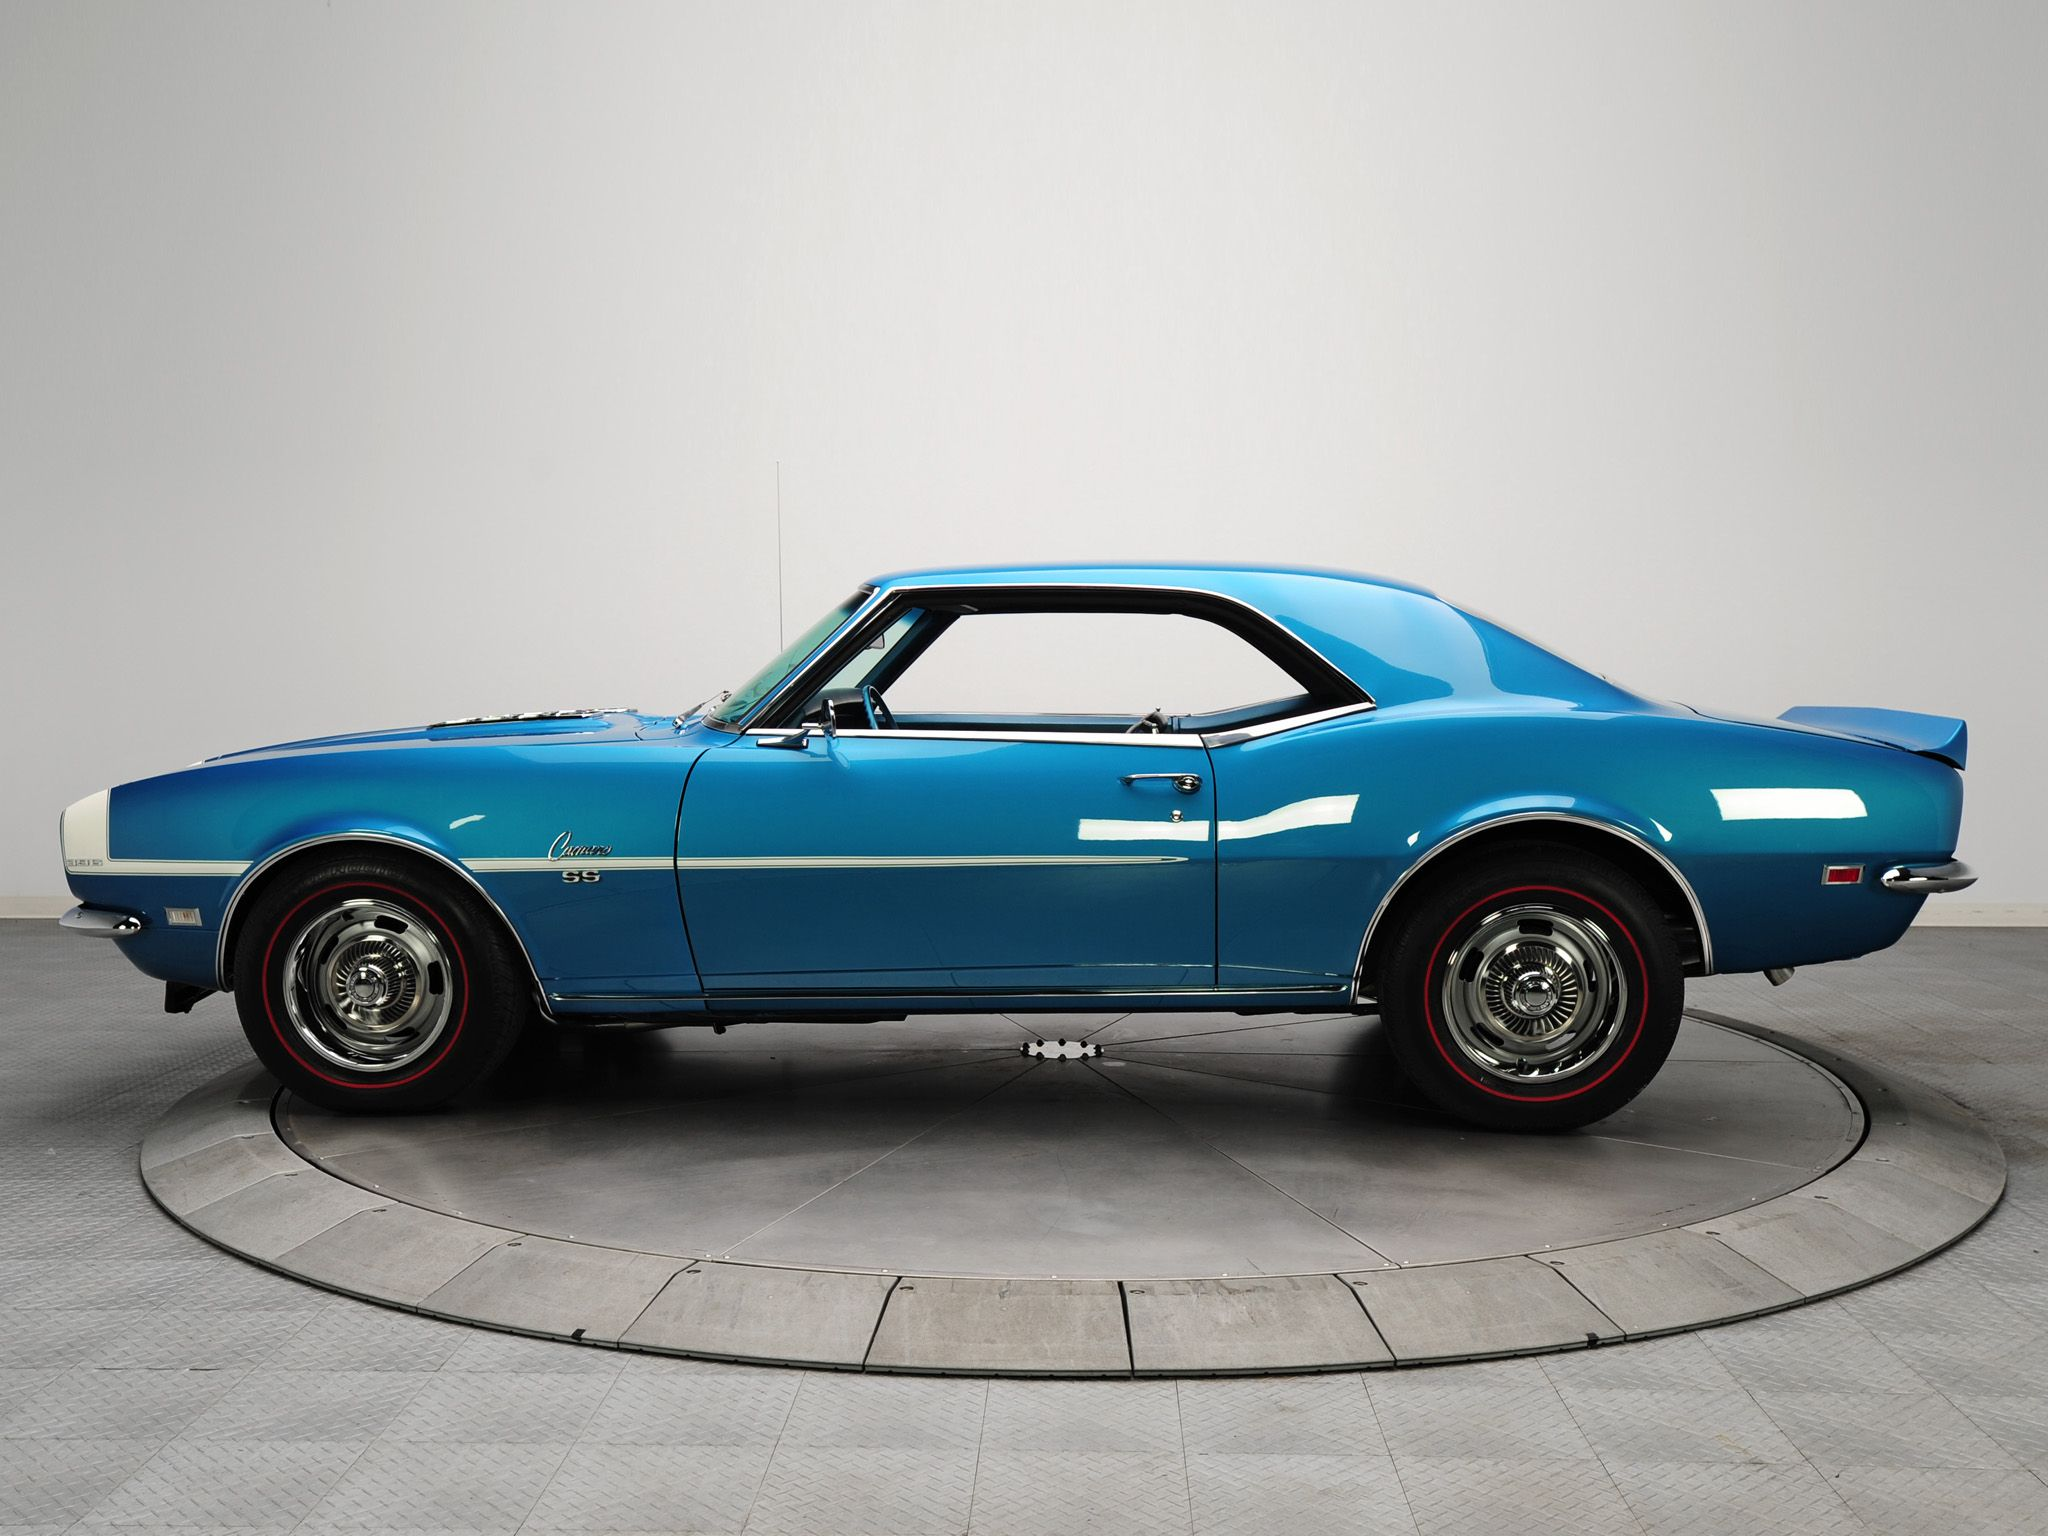 1968 camaro ss as seen on the history channel s counting cars read more for the parts list for this car chevy camaros pinterest camaro ss